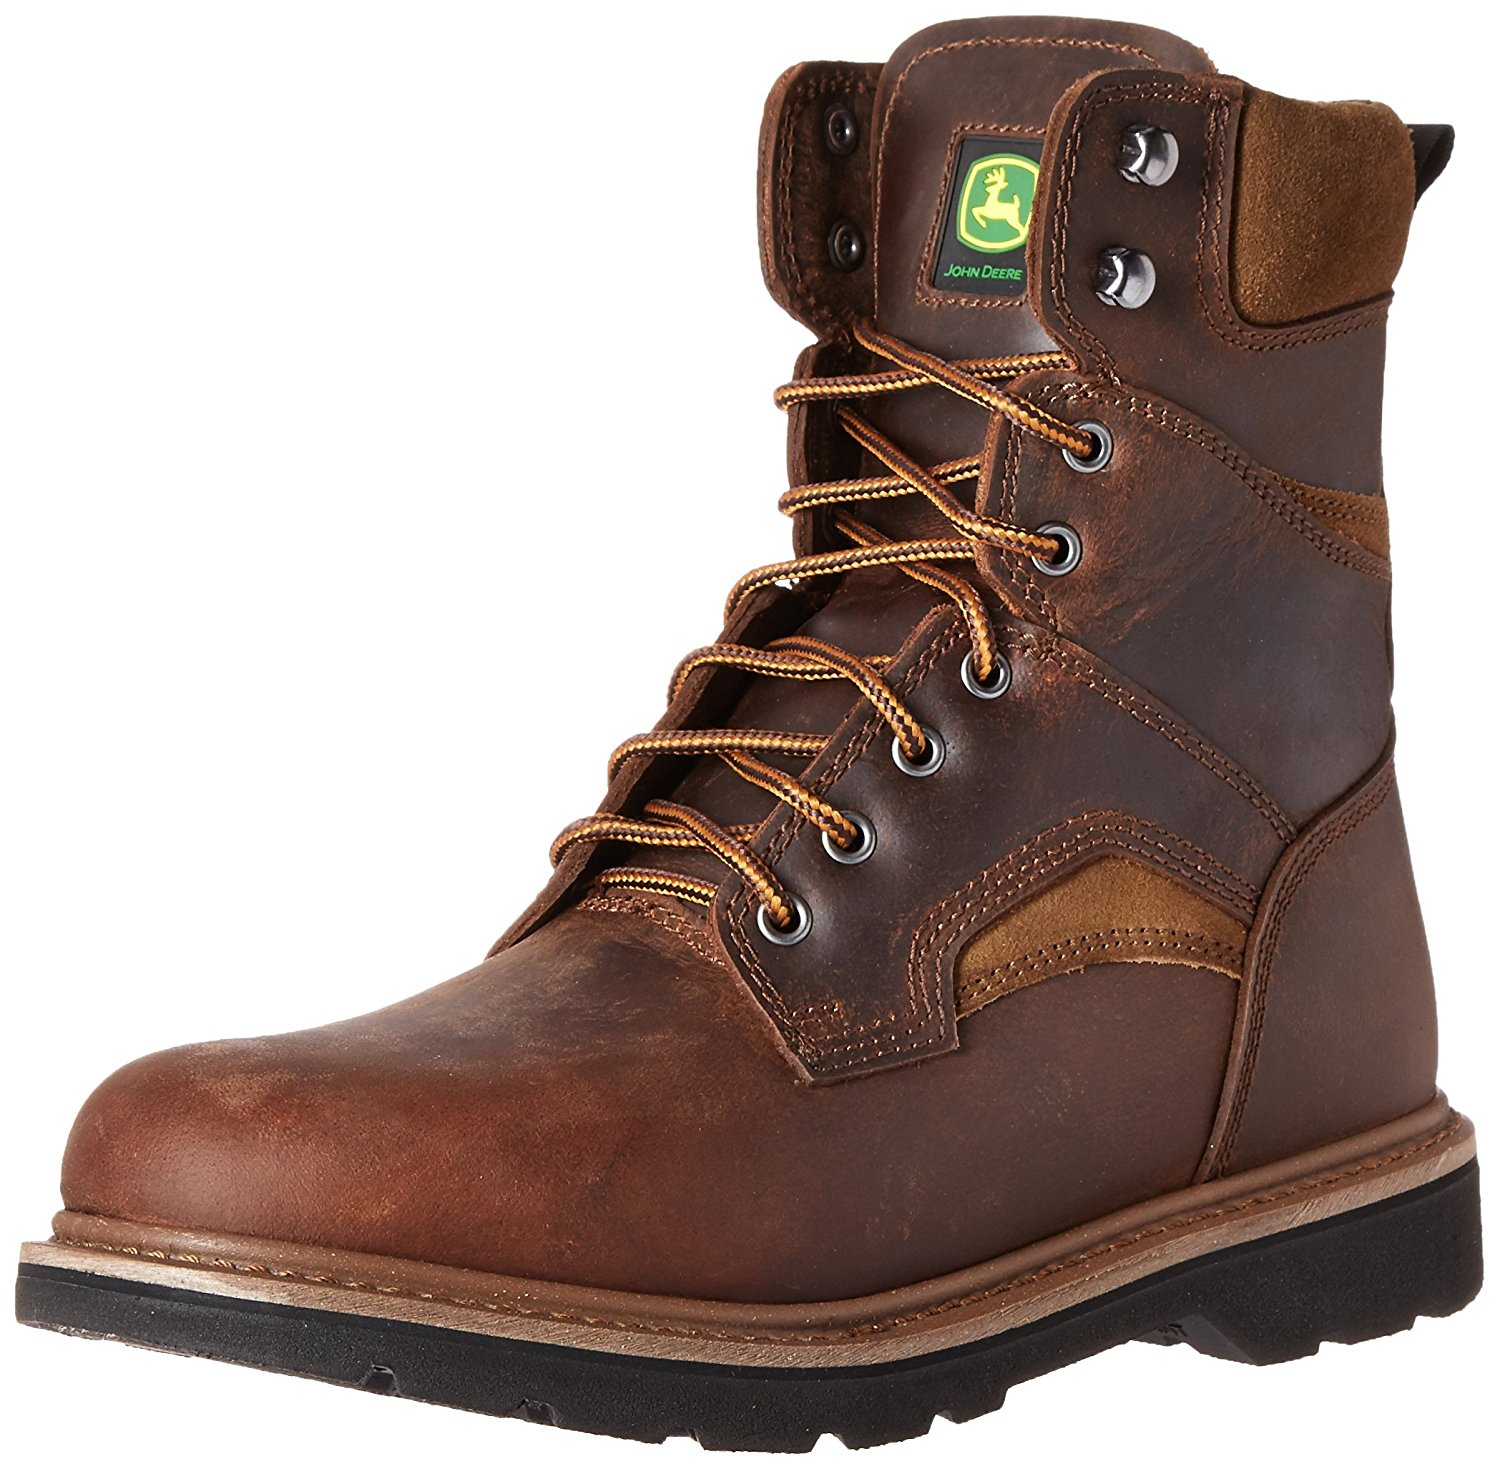 John Deere Men's 8'' Farm Lace Up Work Boots Brown Leather 8 W by John Deere